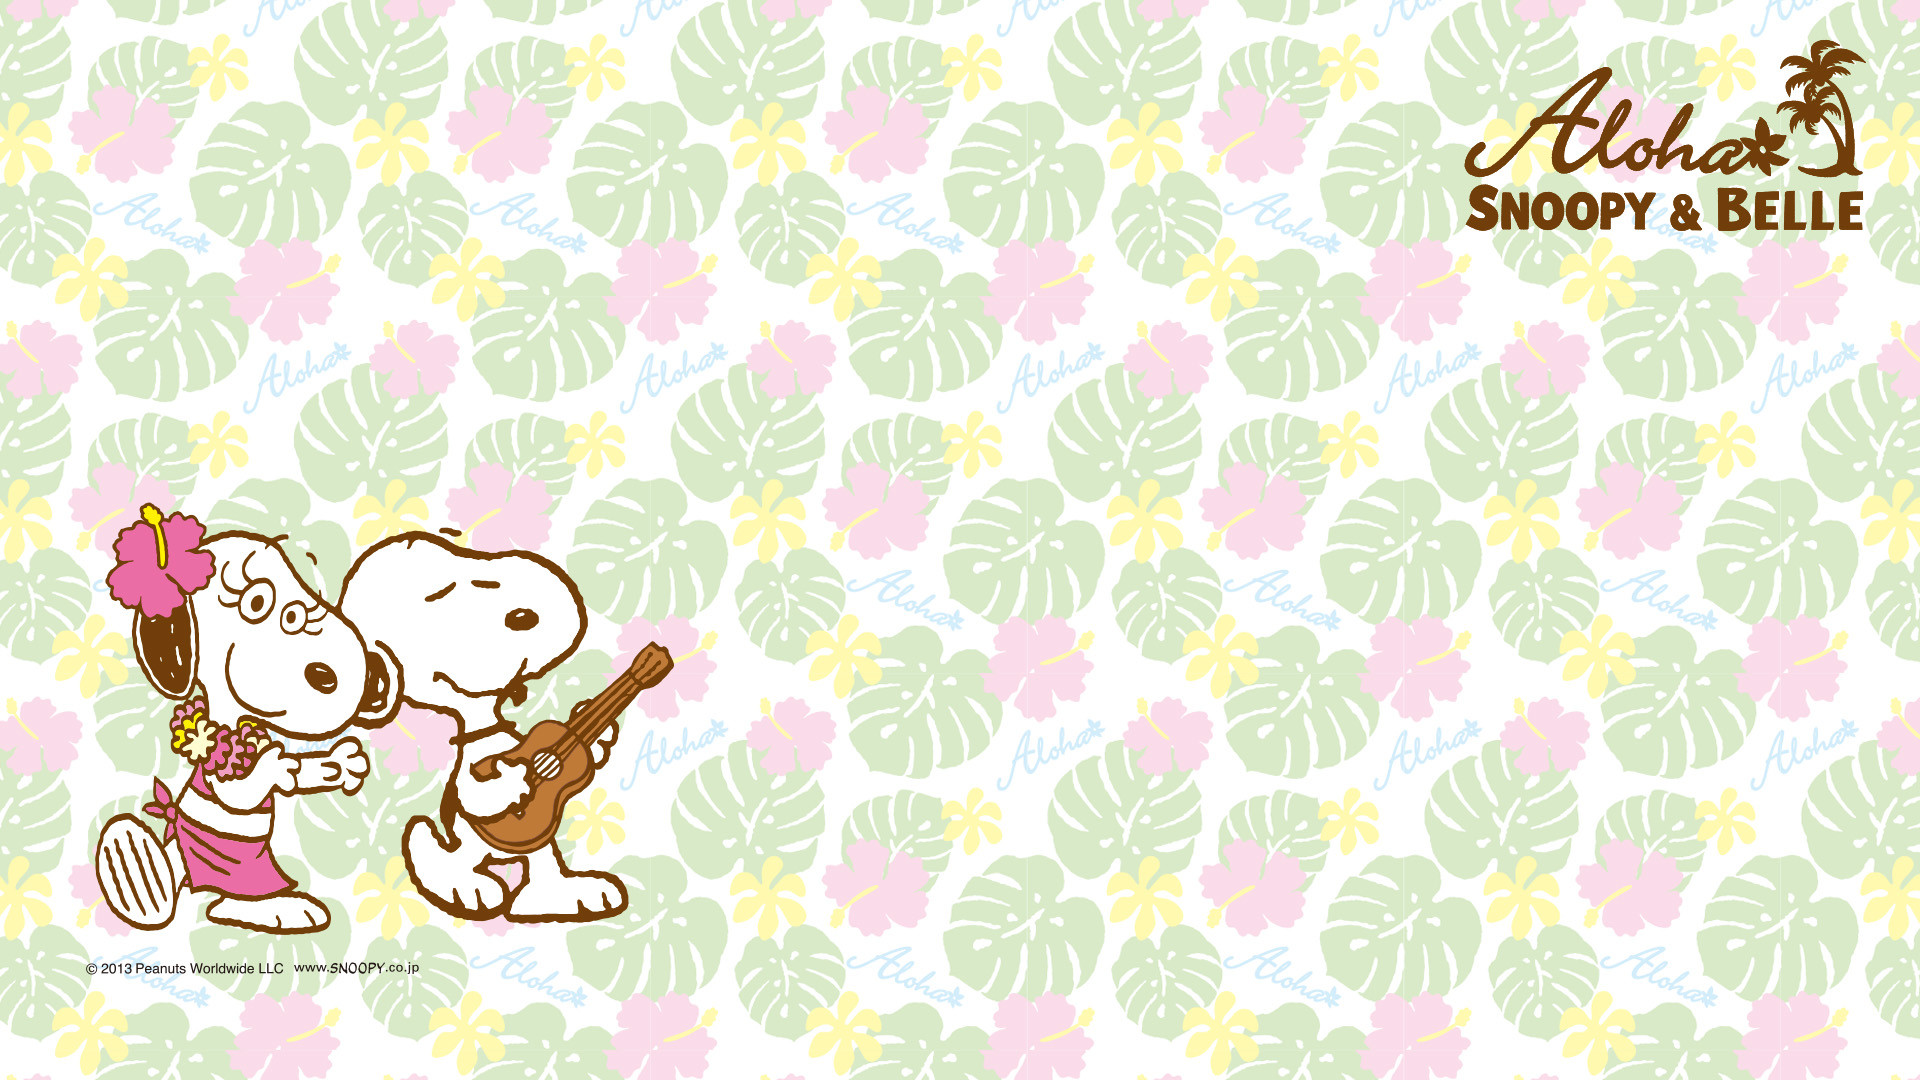 Aloha Snoopy and Belle